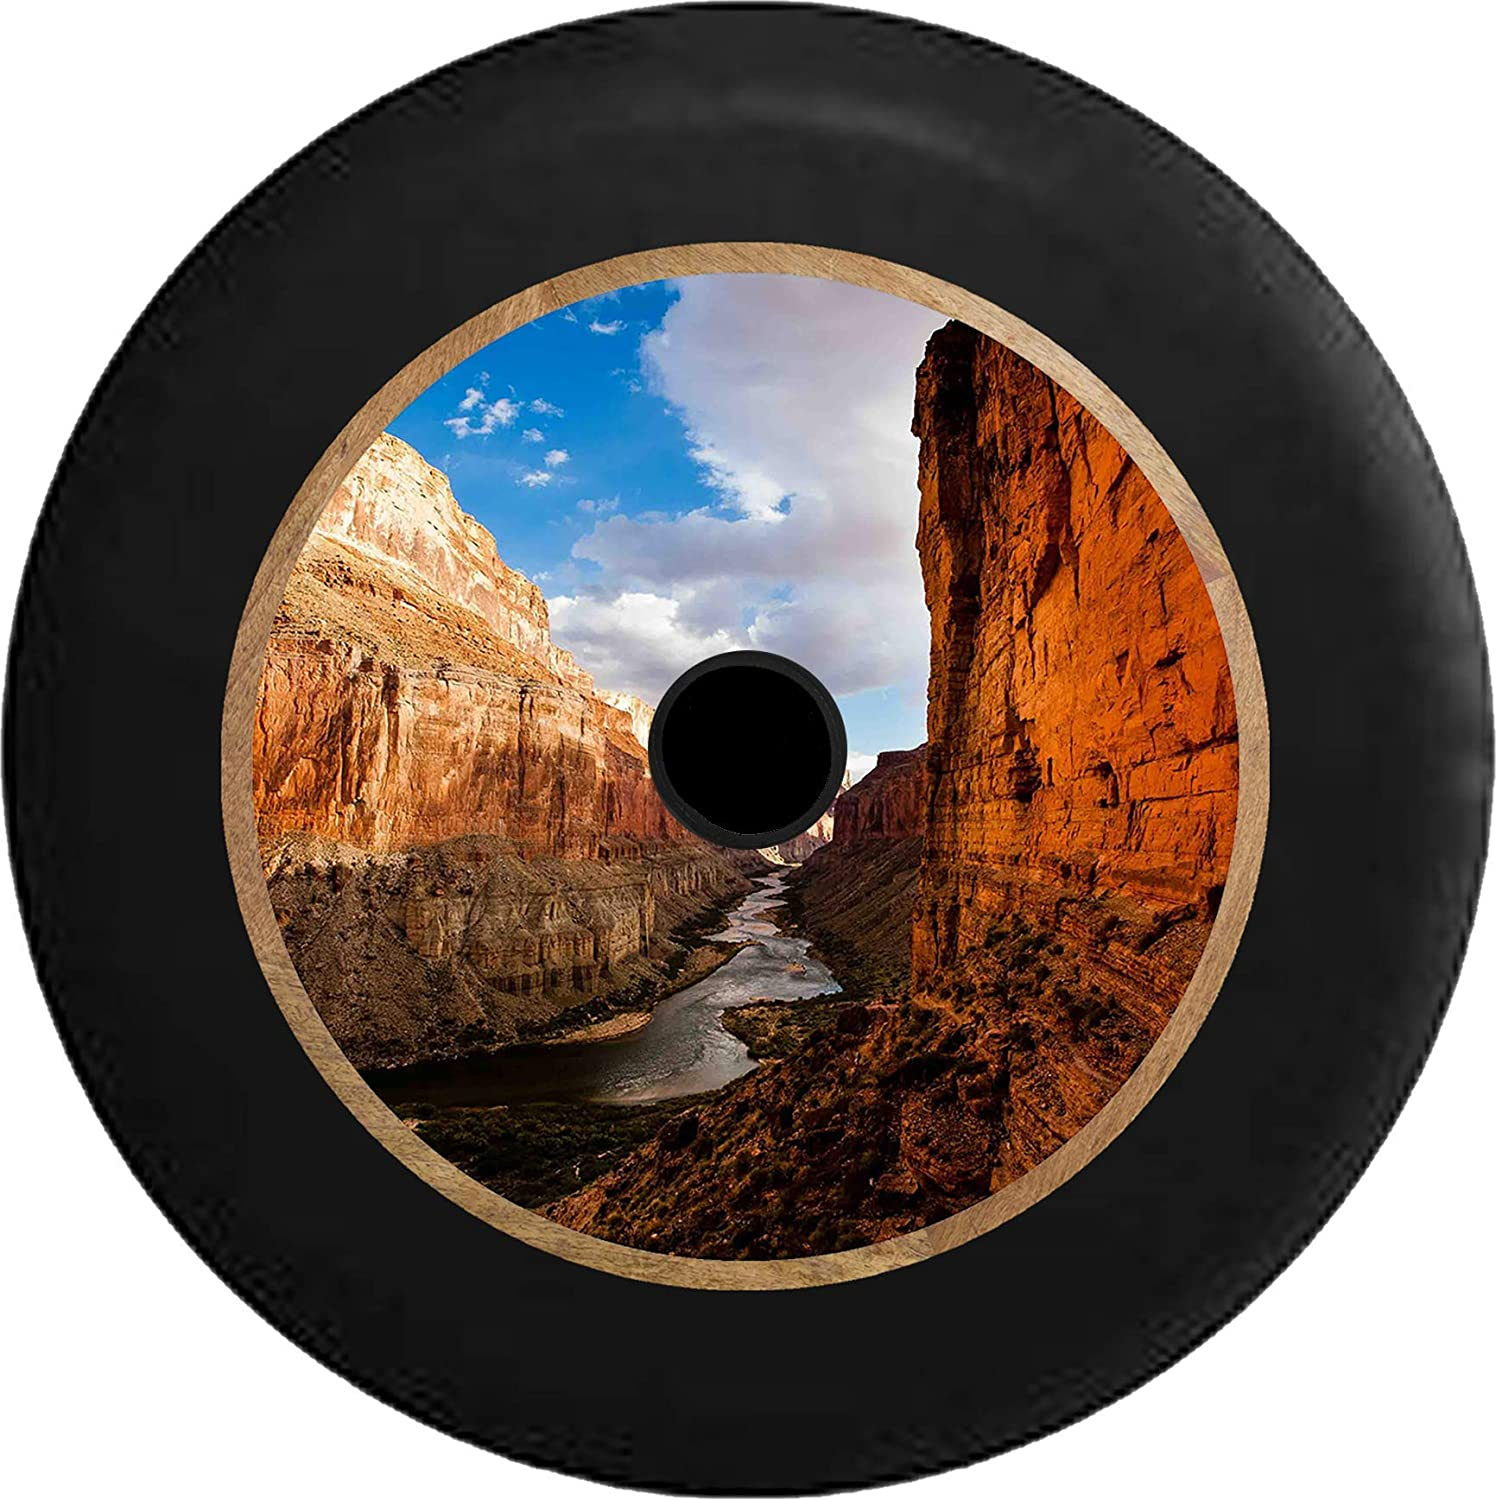 Pike Outdoors JL Series Spare Tire Cover Backup Camera Hole Full Color Grand Canyon River View from Shore Black 32 in